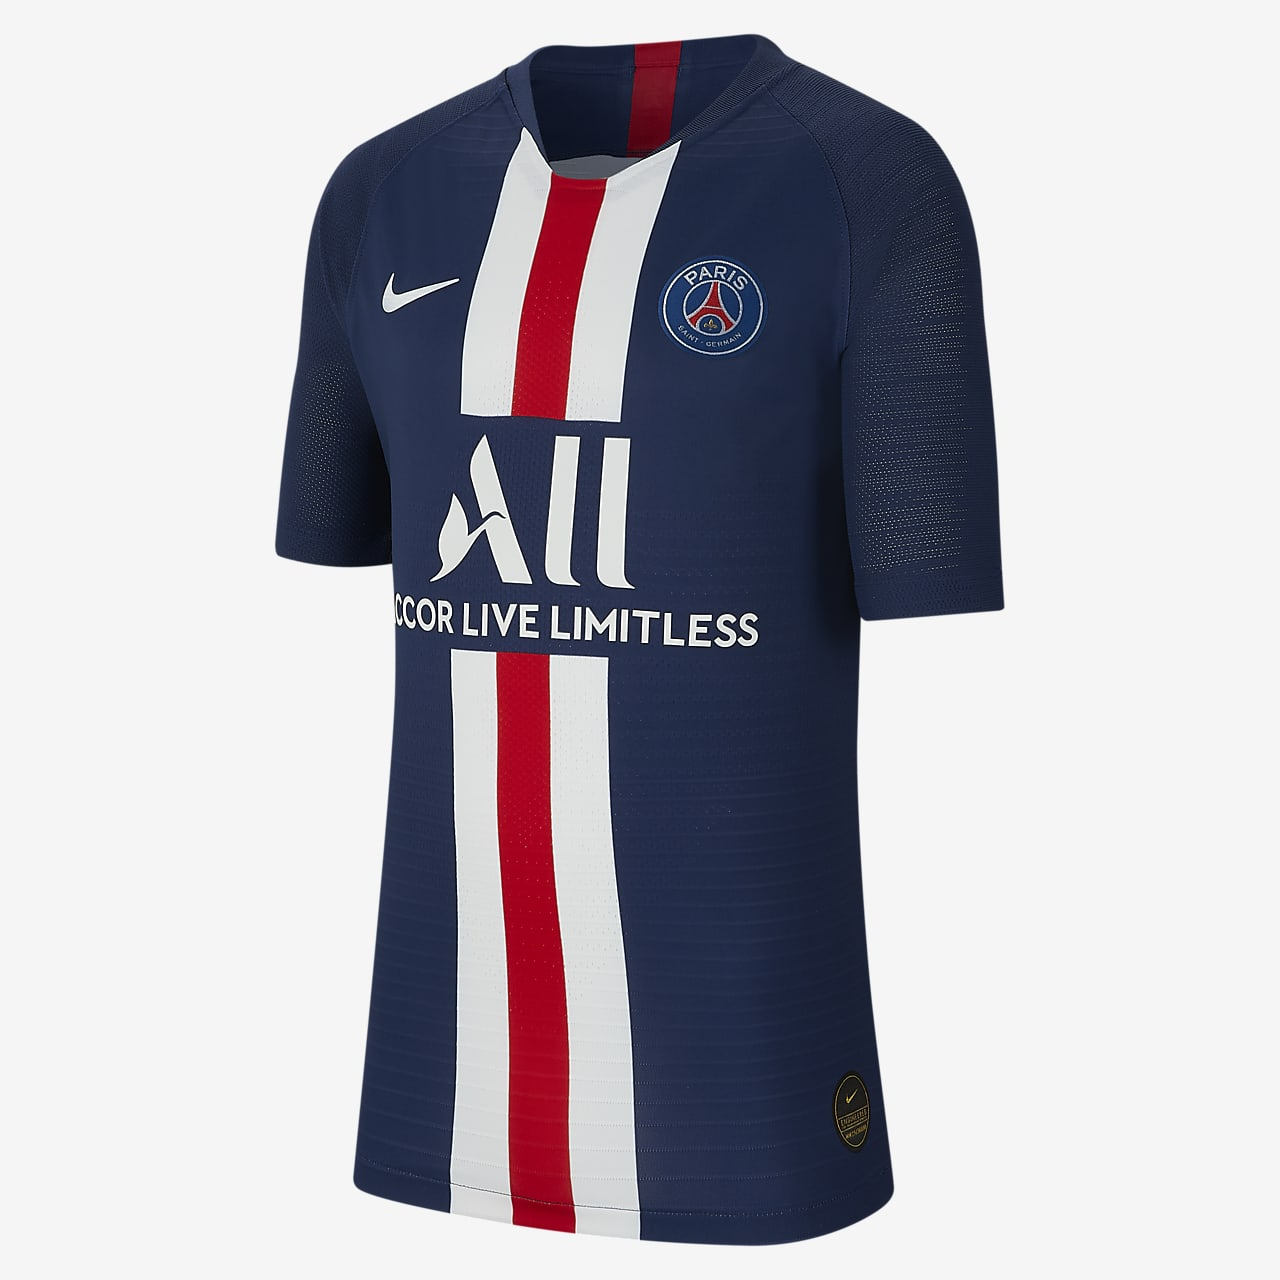 Maillot de football Paris Saint-Germain 2019/20 Vapor Match Home pour Enfant plus âgé